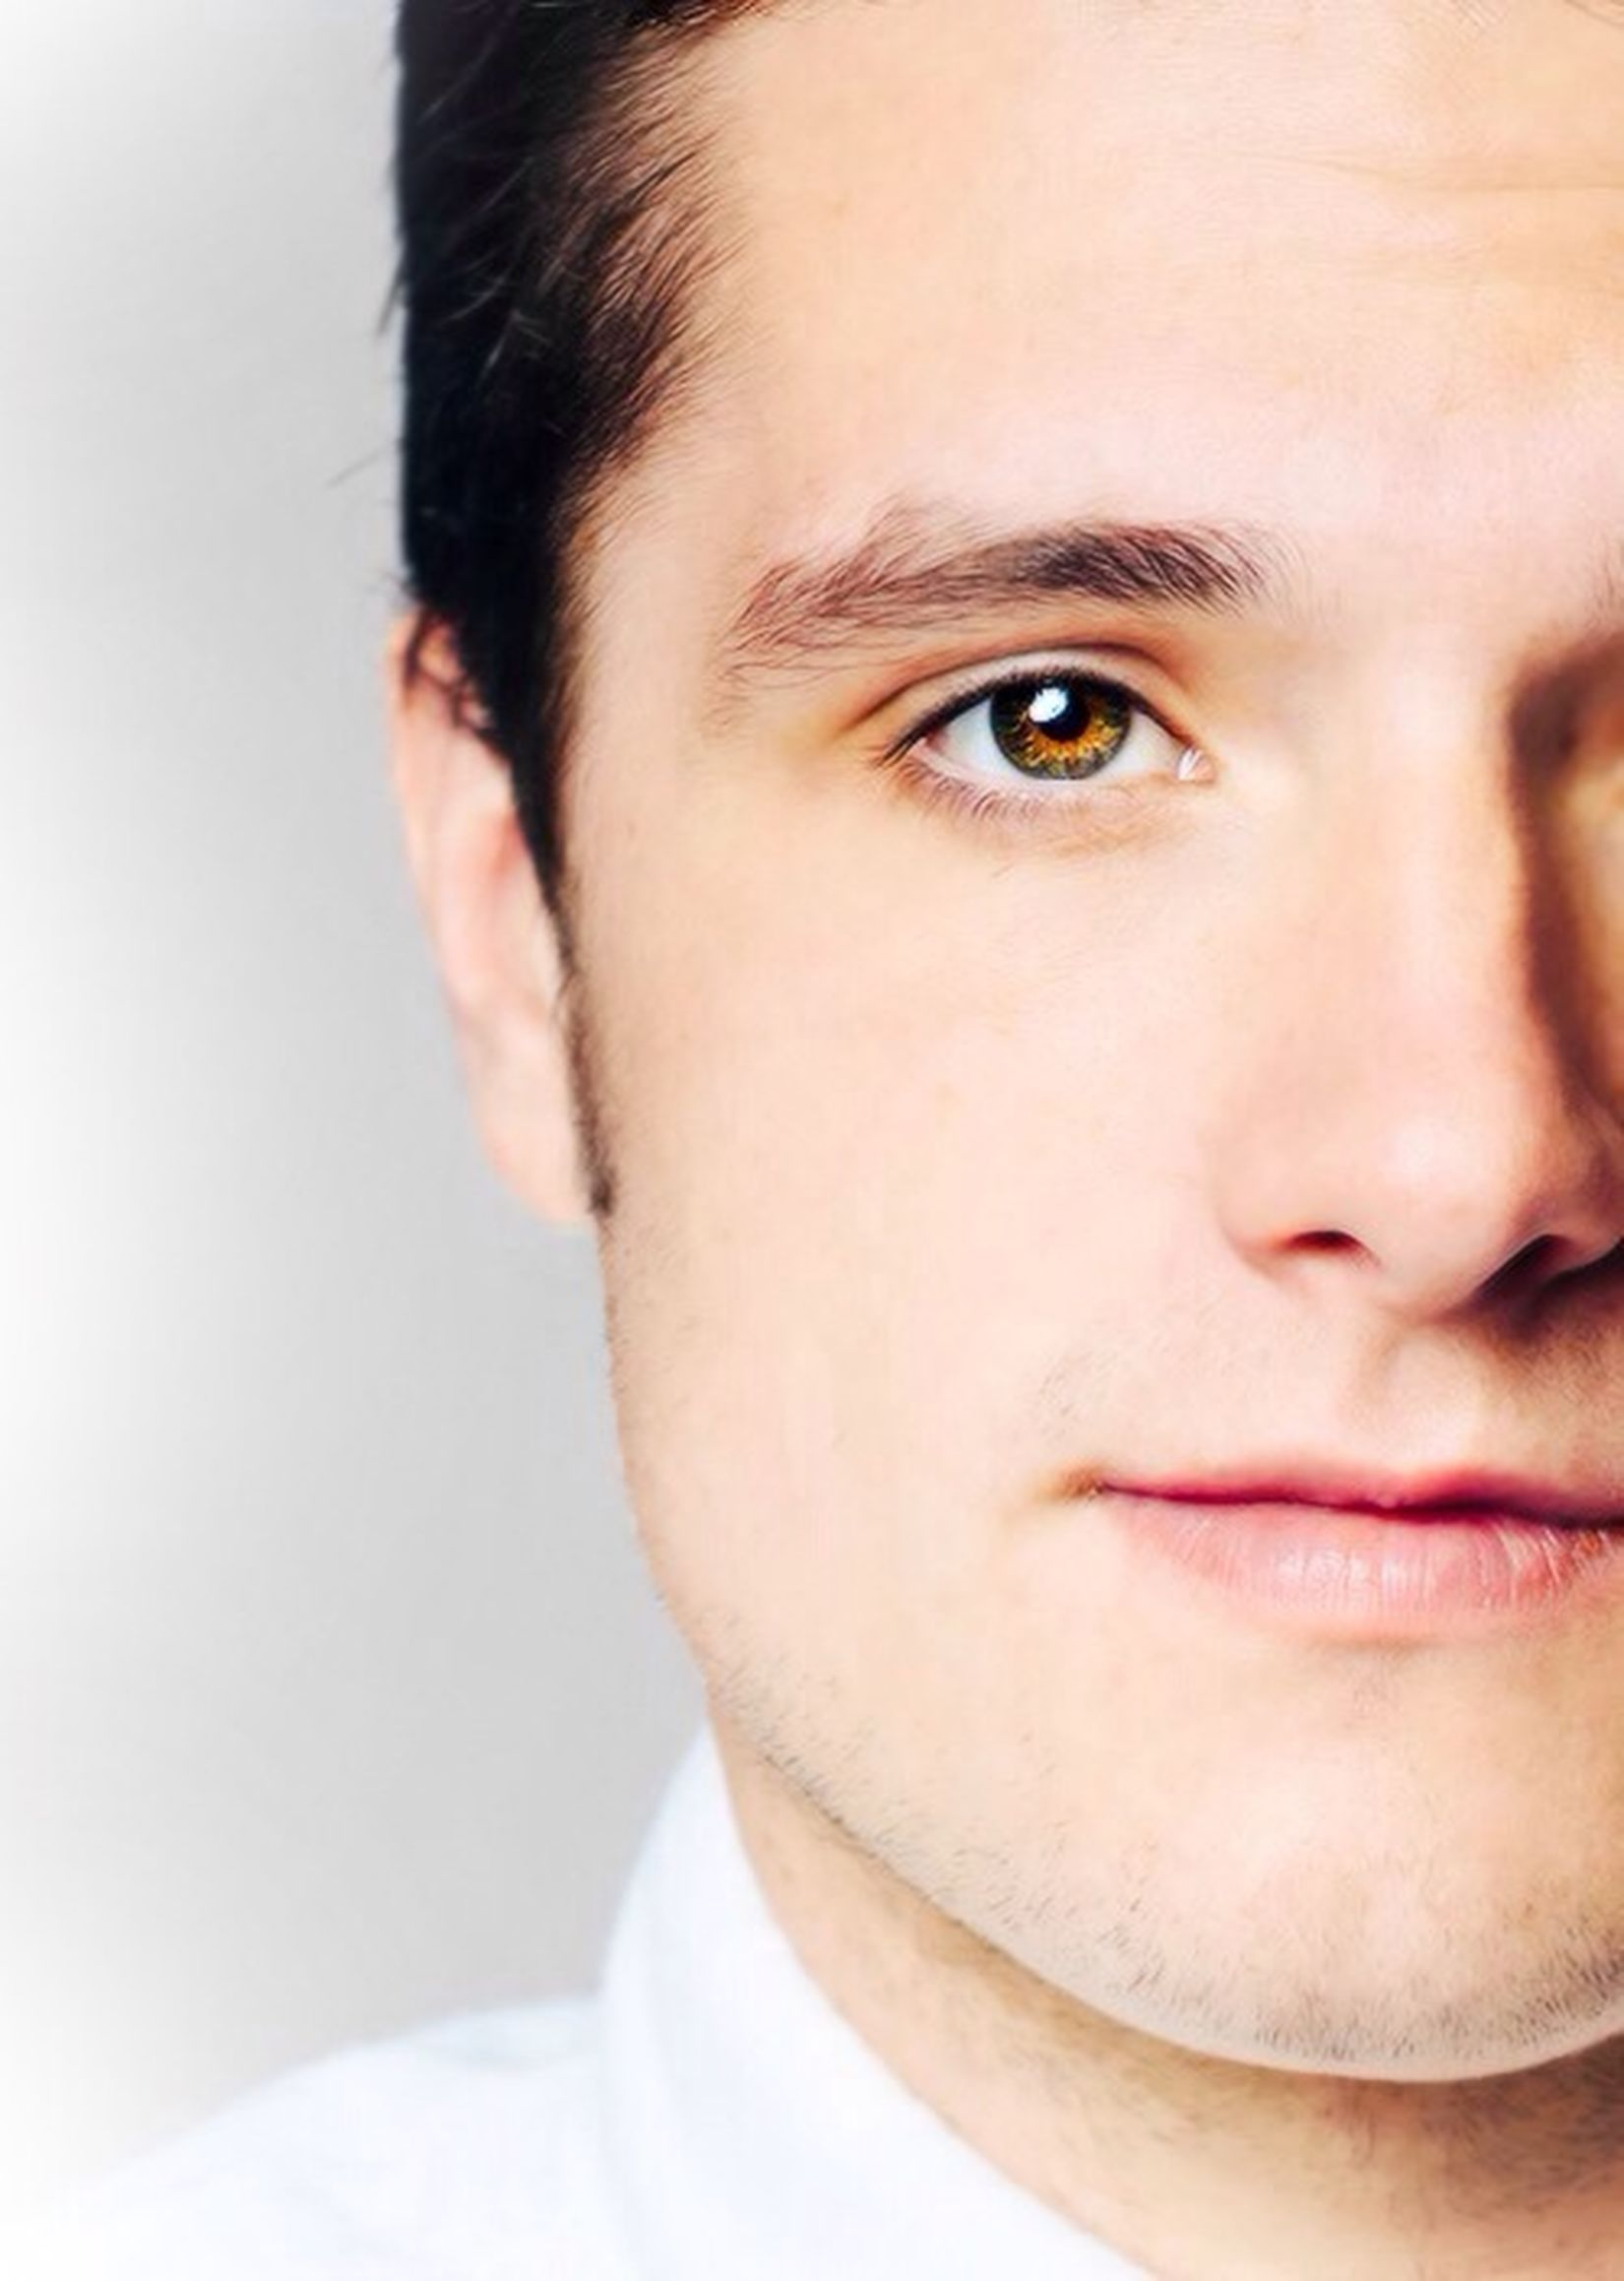 The feeling in your stomach you get when you stare into his eyes ? Jhutch